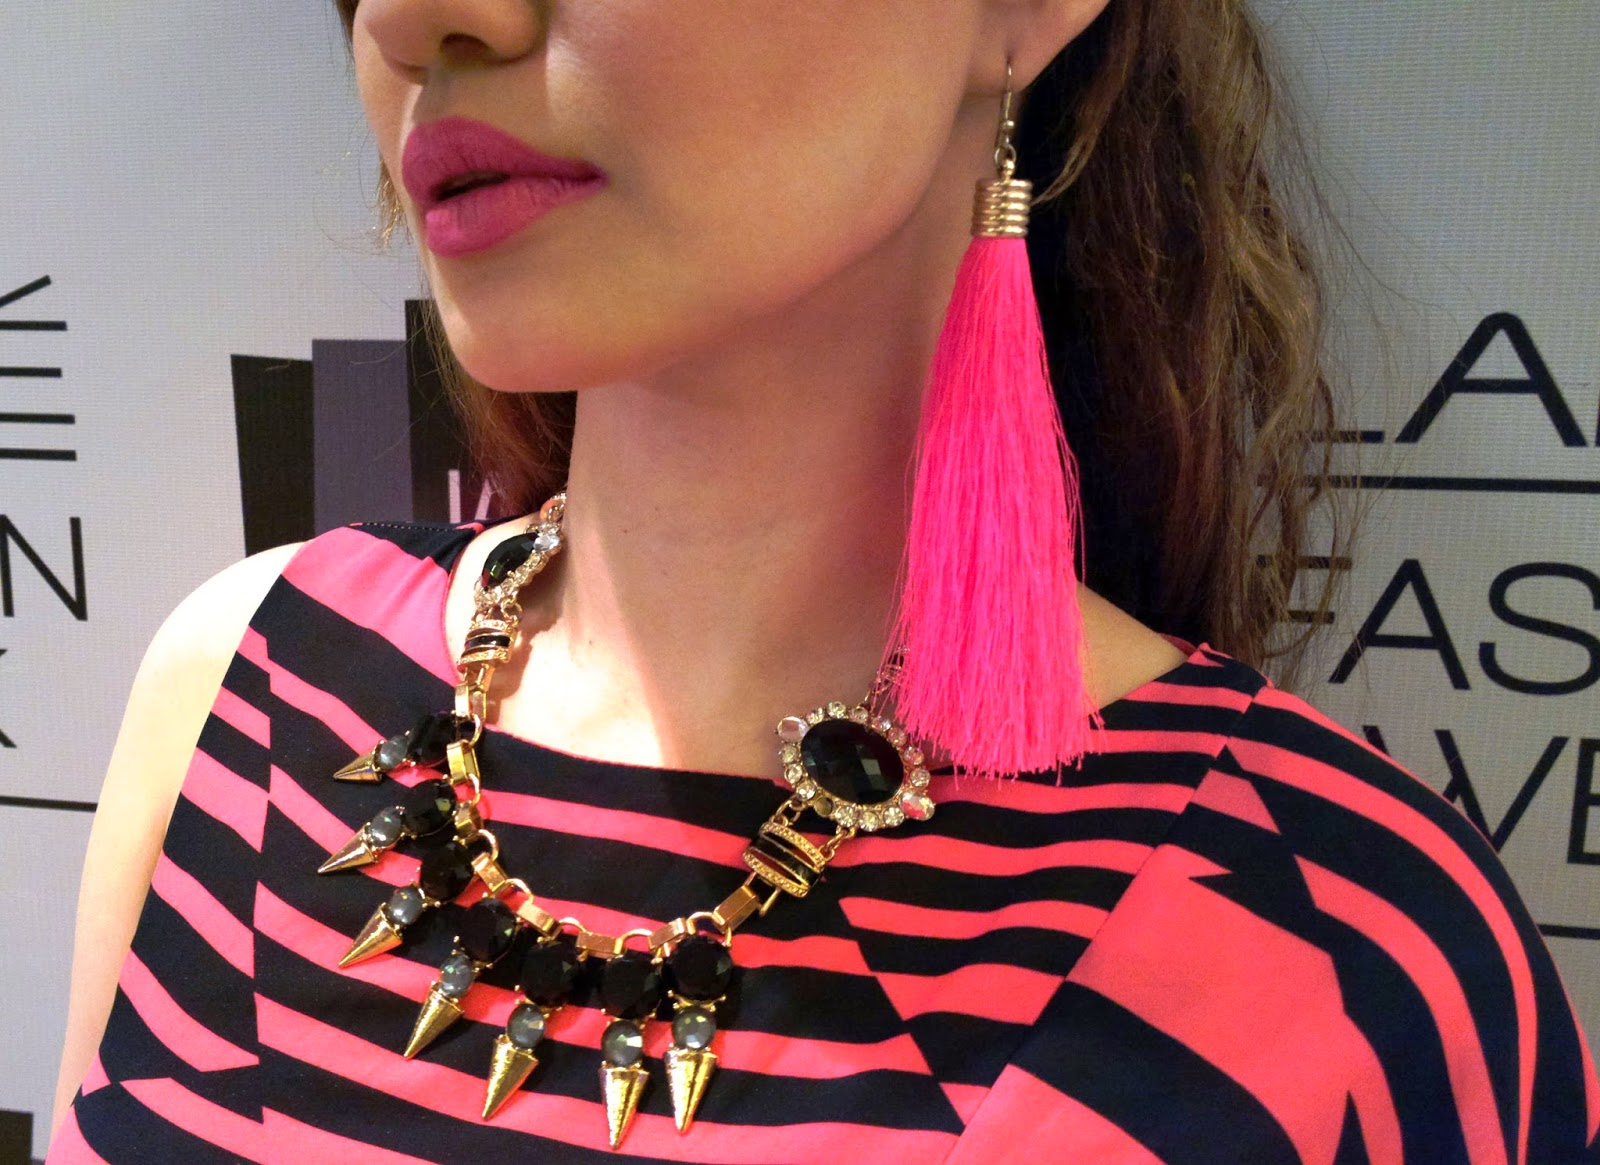 Black & Gold Spike & Stone Necklace and Pink Tassel Earrings